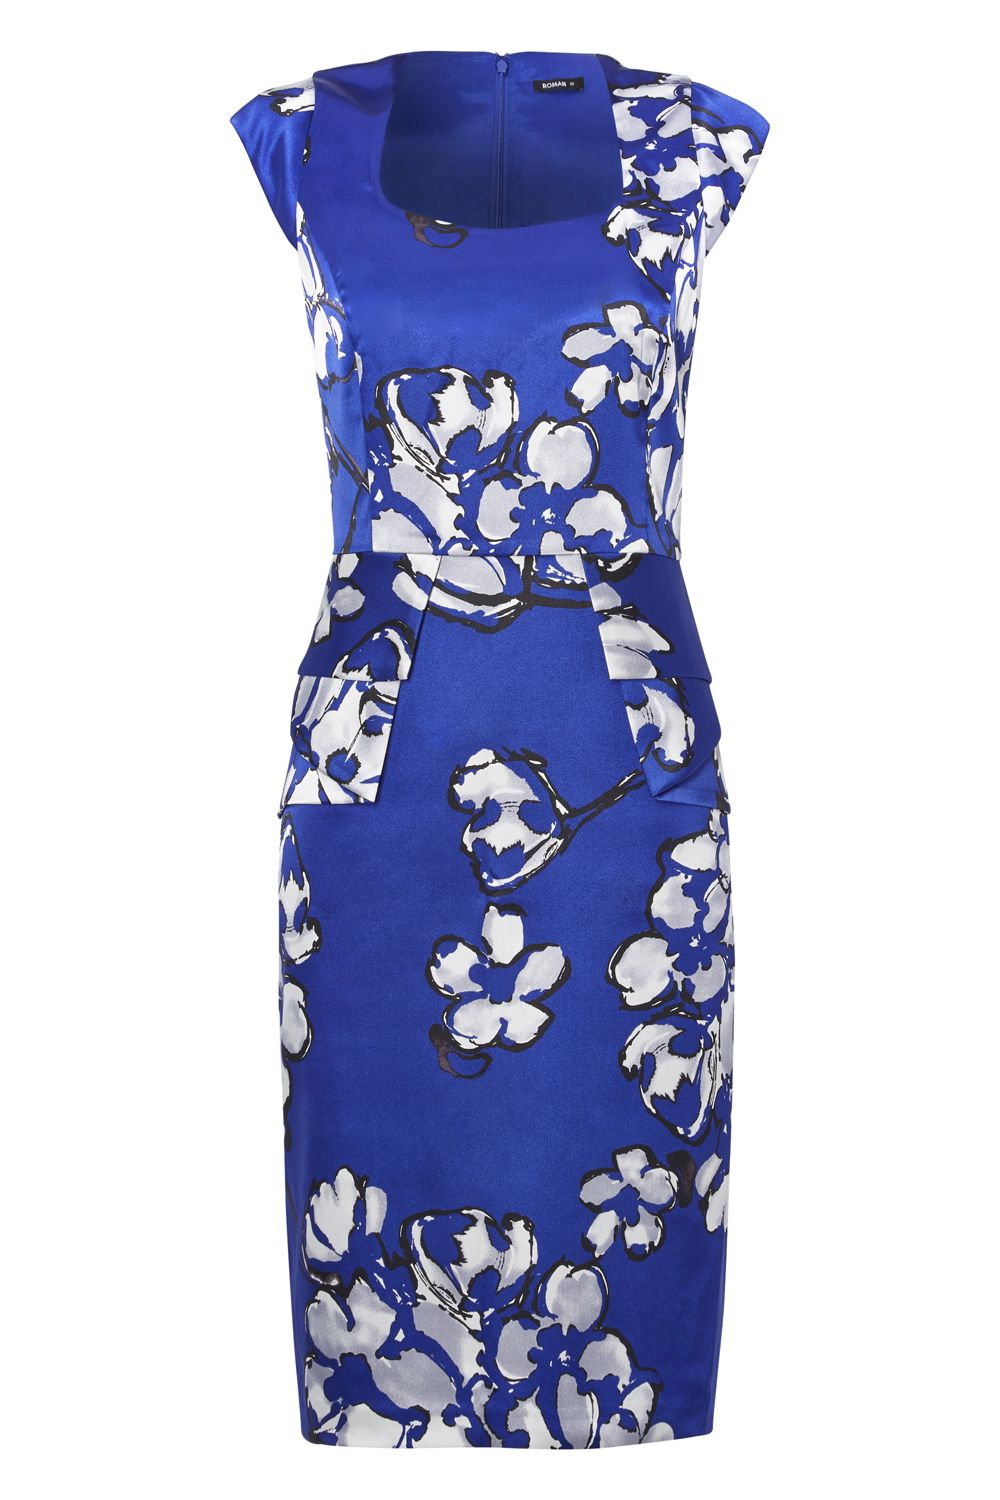 Roman Originals Peplum Floral Shift Dress, Blue